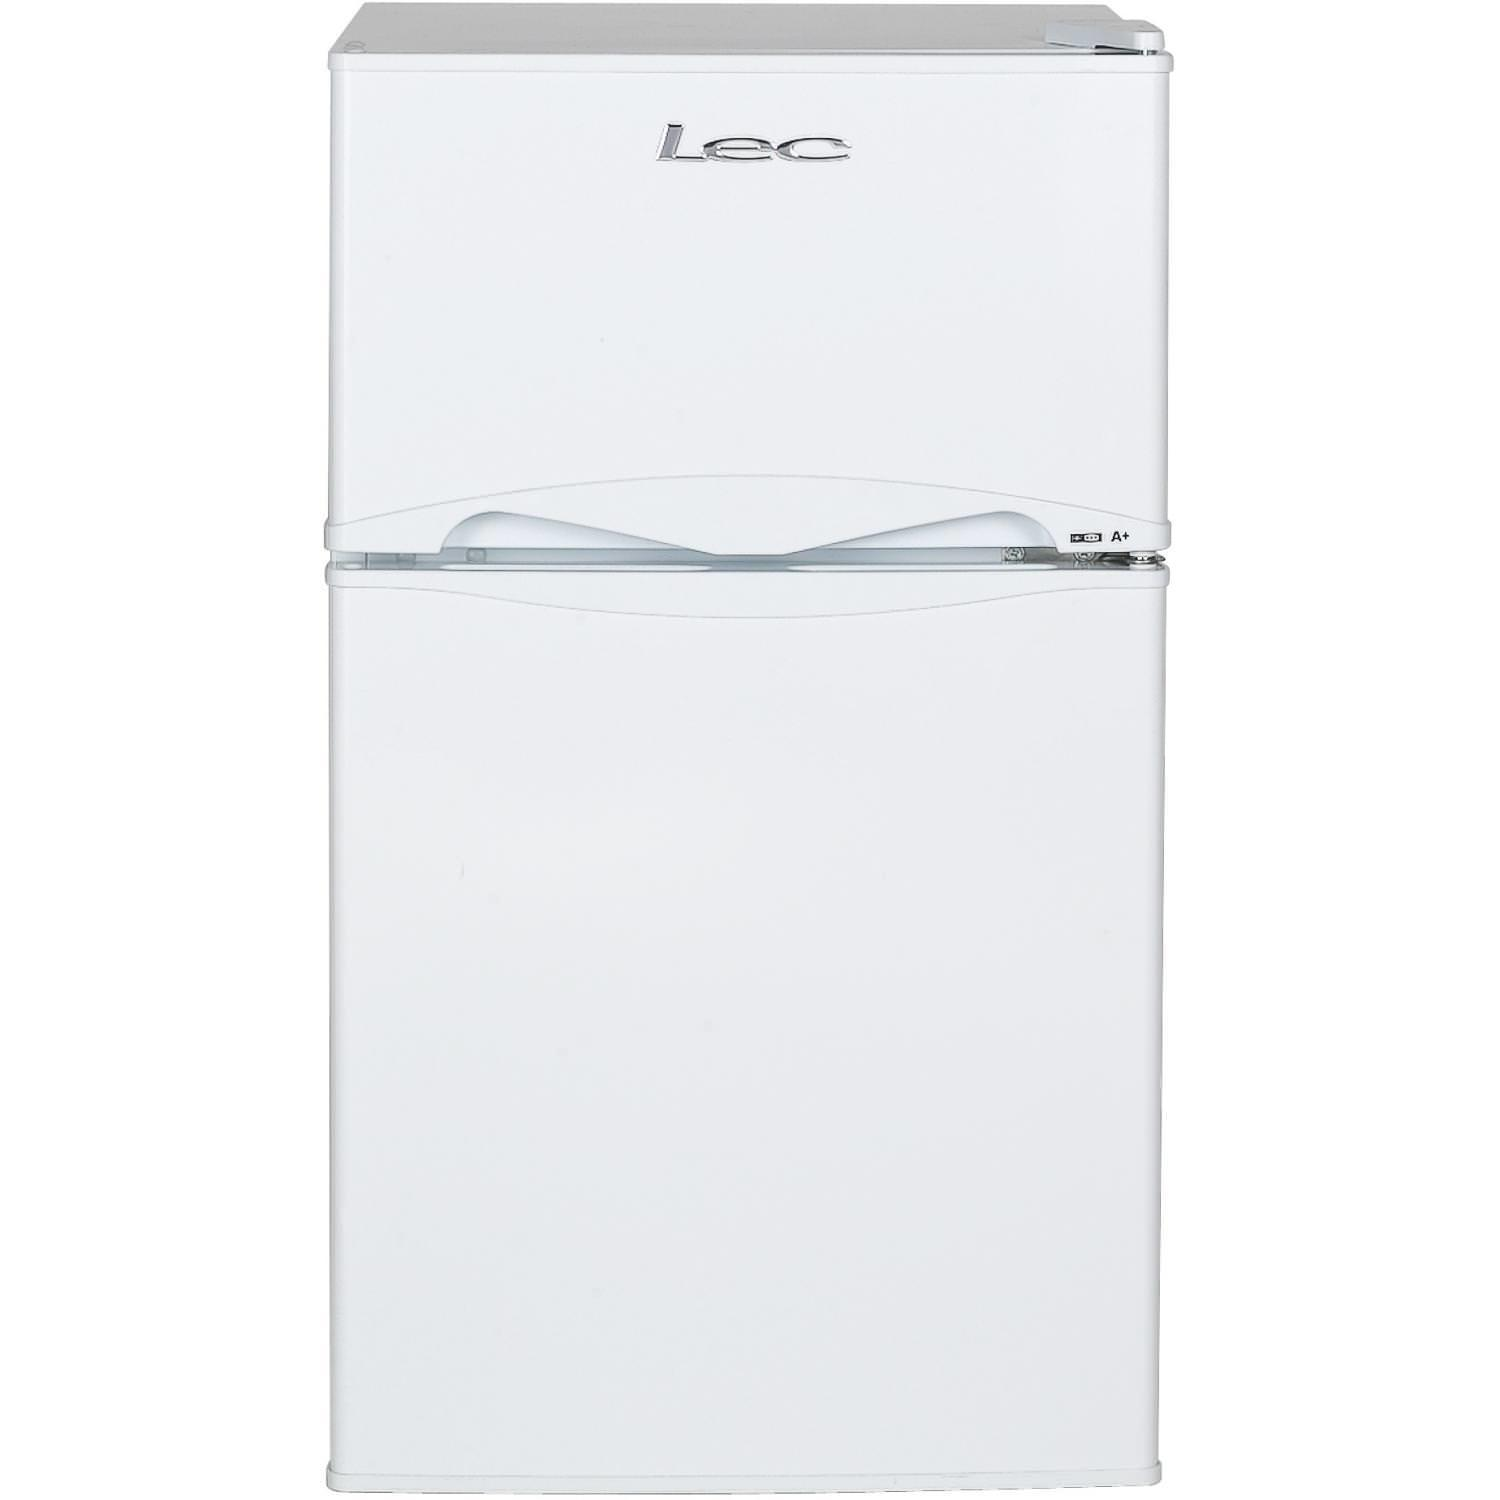 LEC T50084W 87 Litre Auto Defrost Under Counter Fridge Freezer